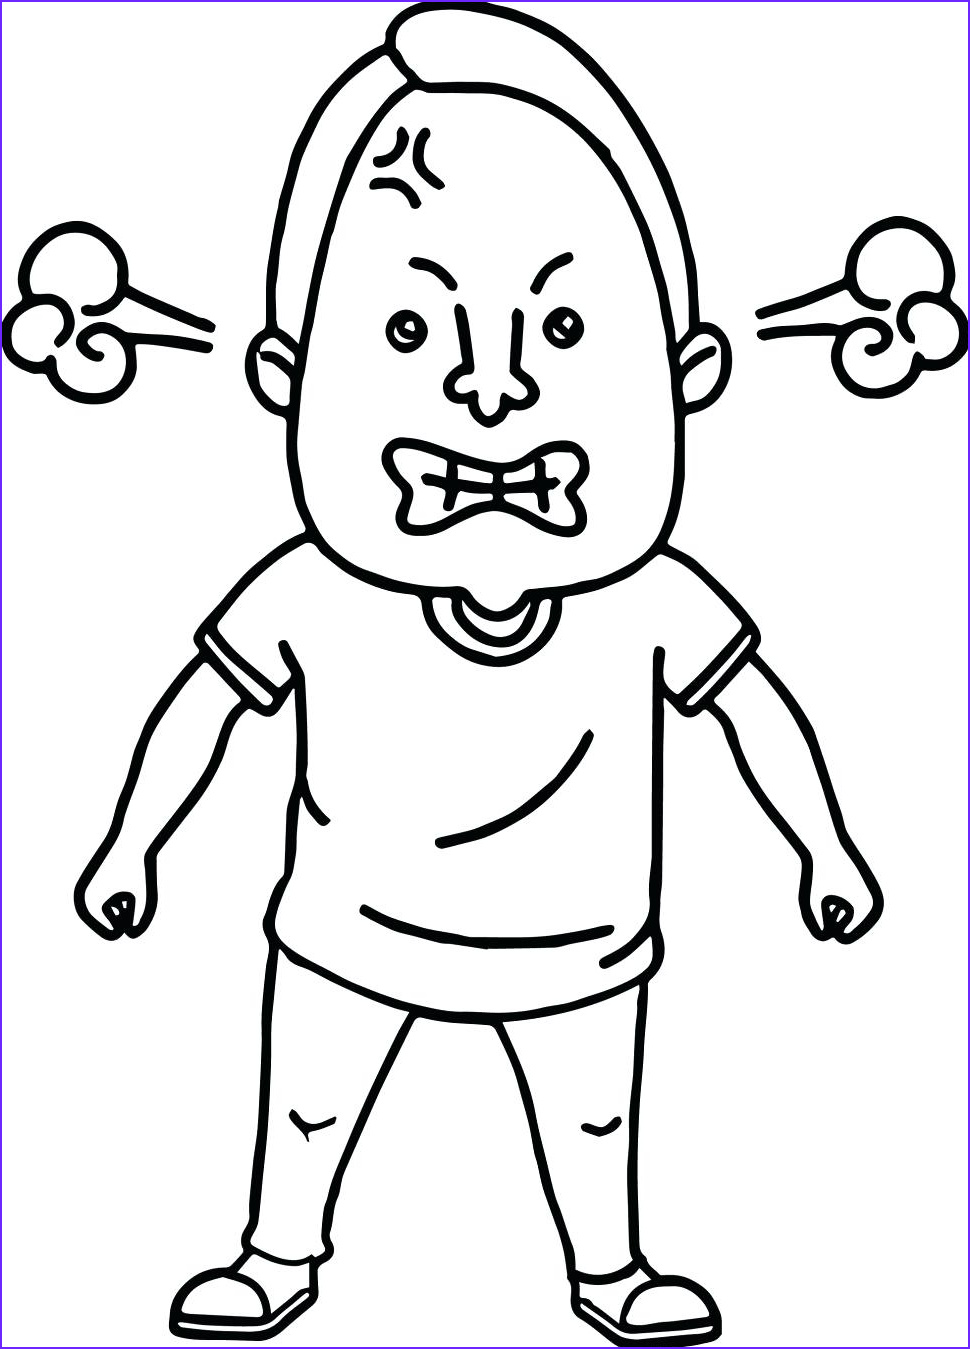 Anger Coloring Pages Inspirational Photos Angry Person Drawing at Getdrawings